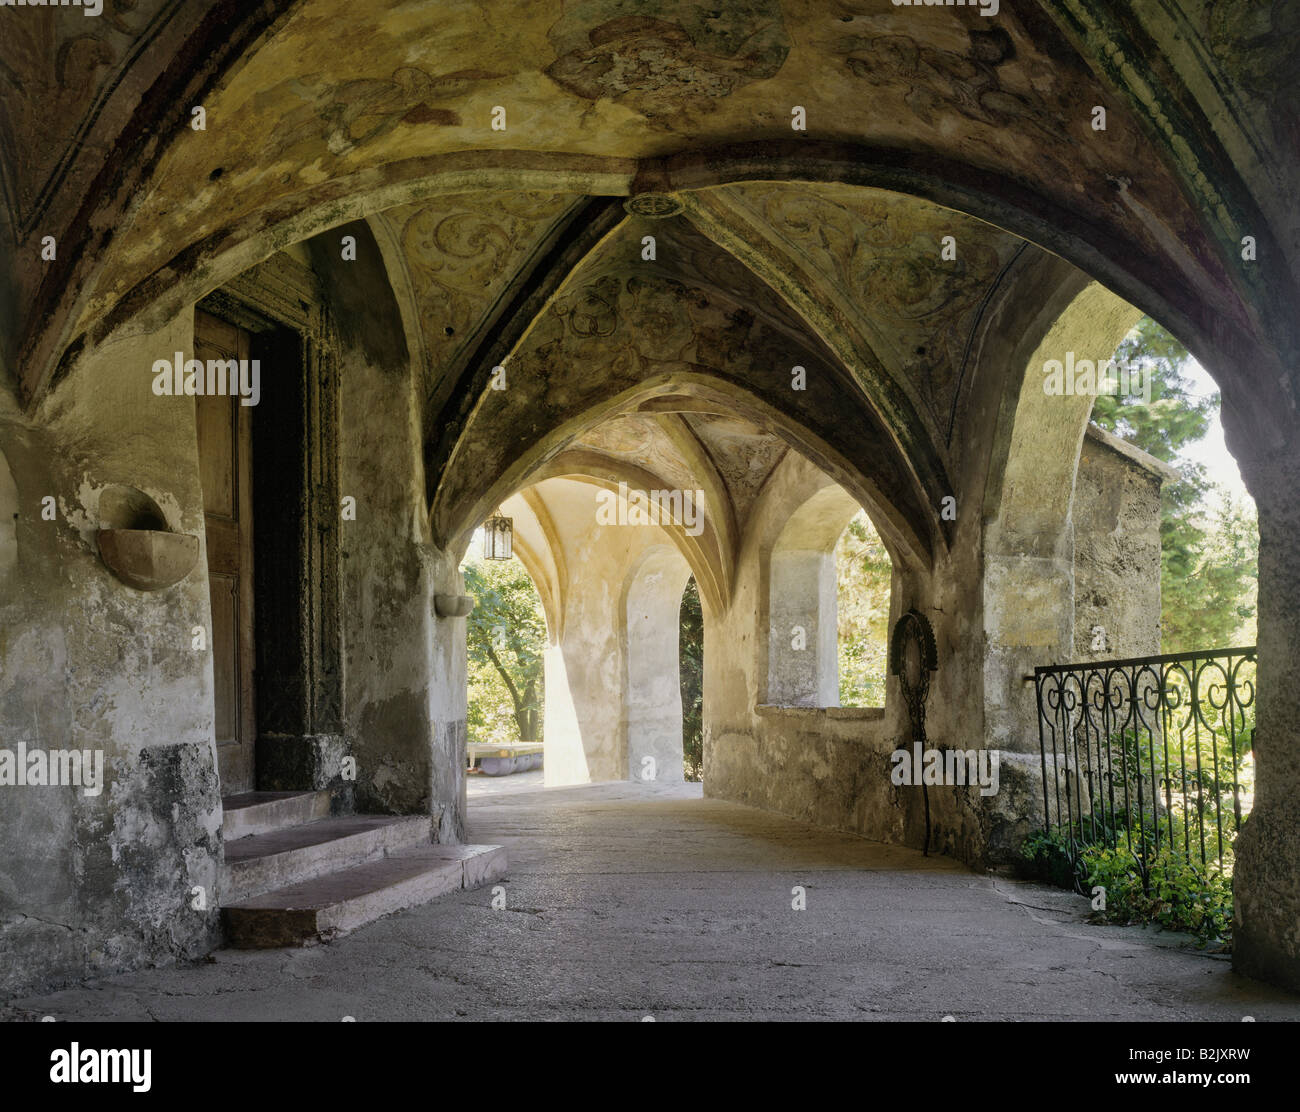 geography / travel, Germany, Bavaria, Laufen, churches, Stiftkirche Mariae Himmelfahrt, interiour view, cloister, - Stock Image